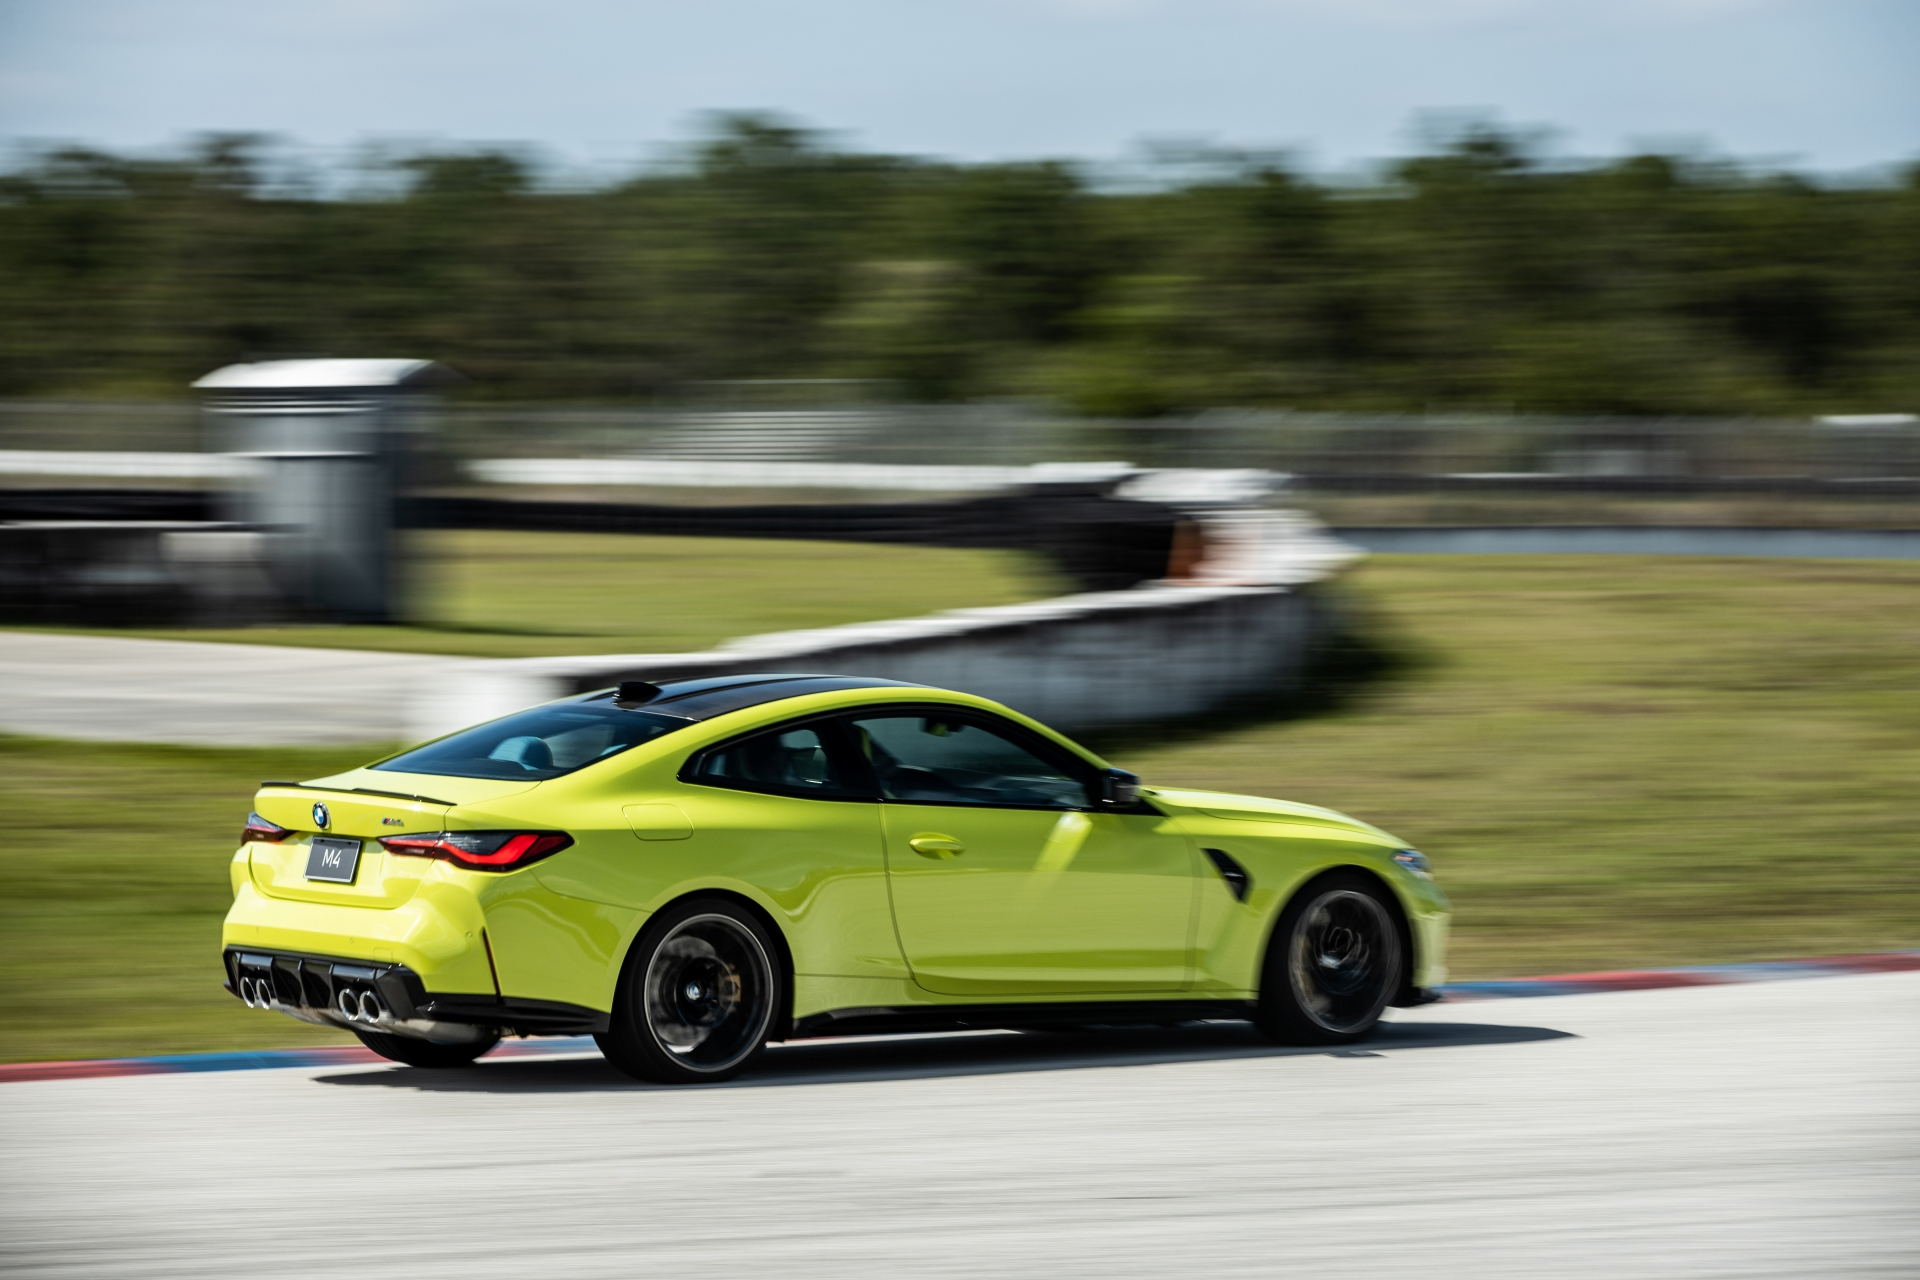 REVIEW: 2021 BMW M4 – Good Driving Car, But Can You Look Past The Grille?